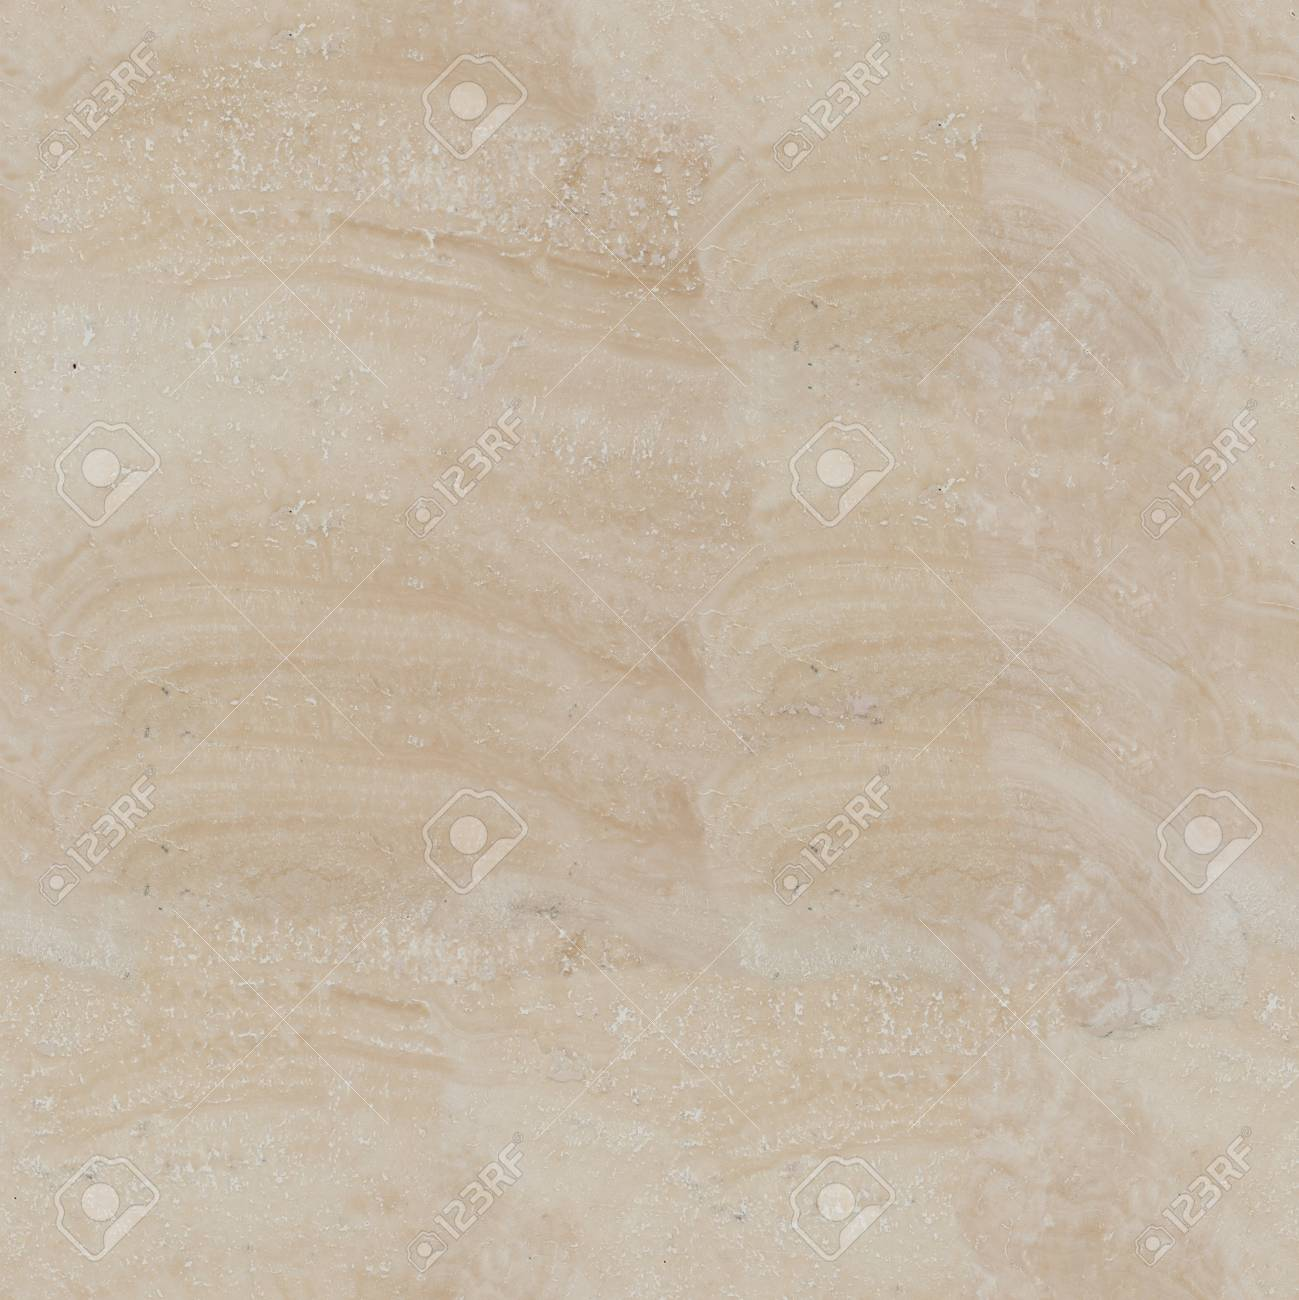 Travertine Beige Color Texture Seamless Square Background Tile Ready High Resolution Photo